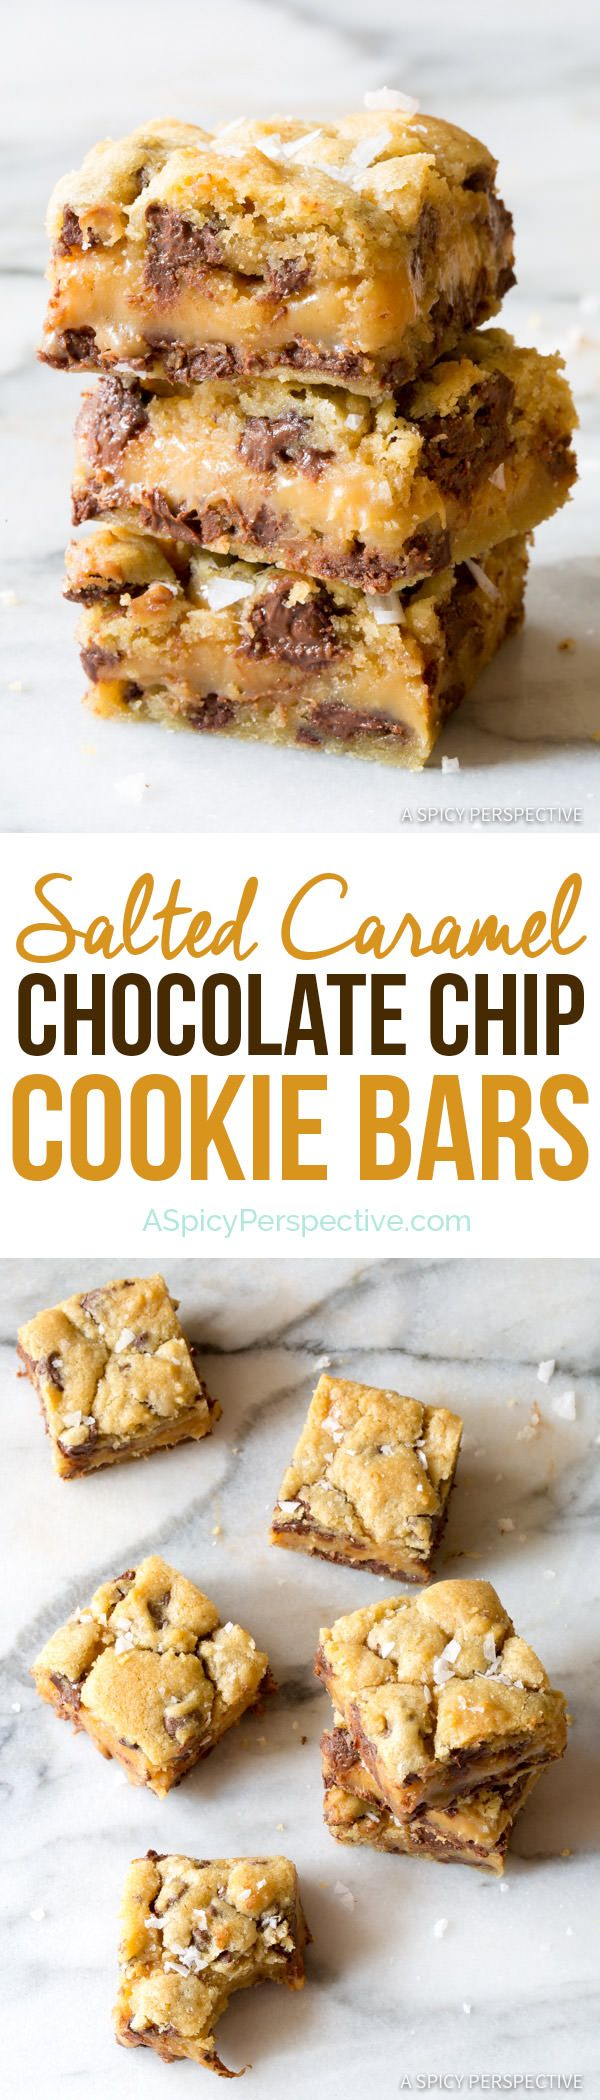 Irresistible Gooey Salted Caramel Chocolate Chip Cookie Bars | ASpicyPerspective.com (Chocolate Chip)